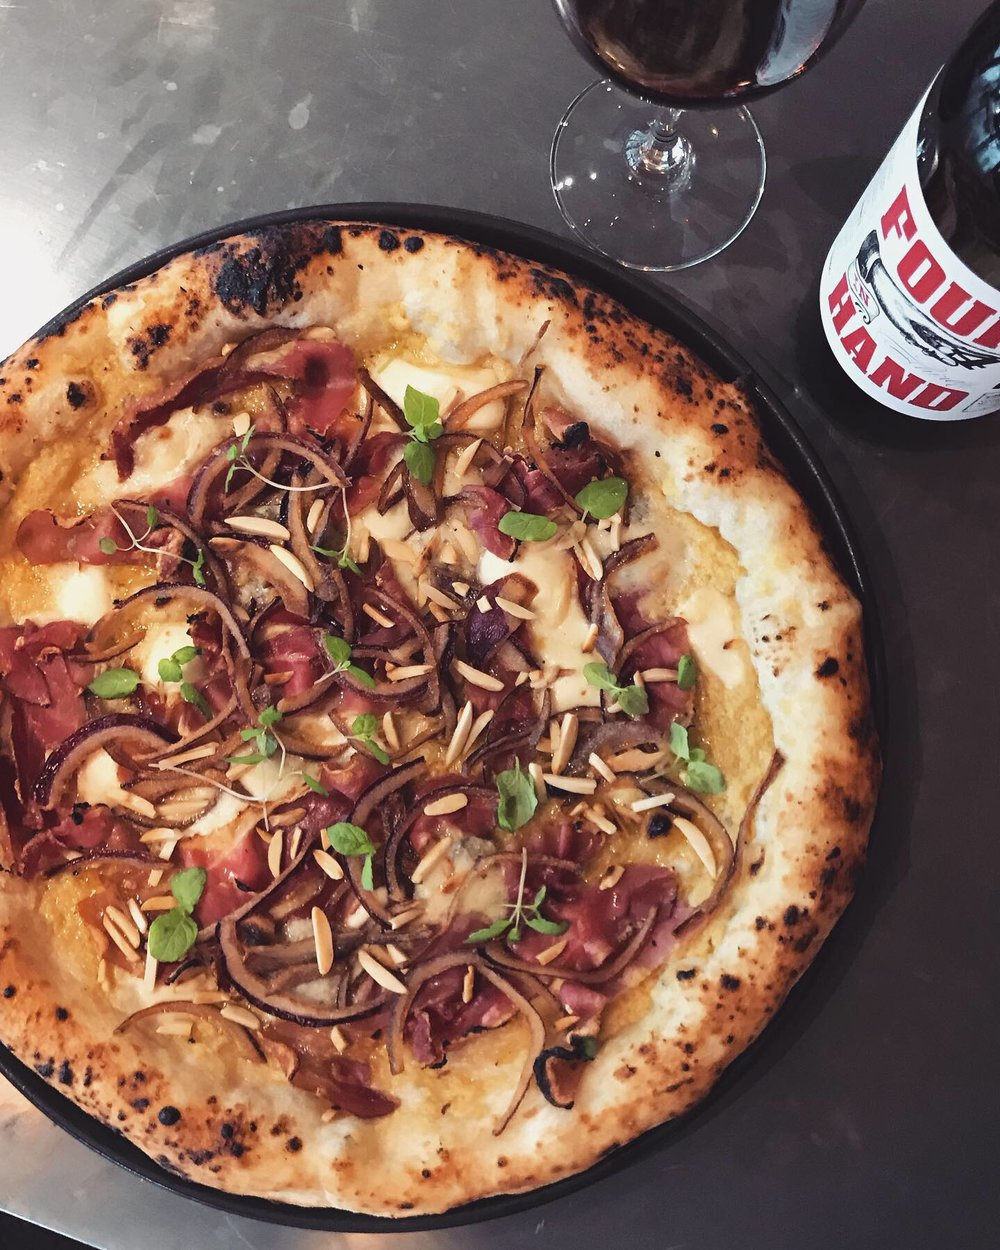 10-16 April - ~ Mugnaia ~⠀⠀White base of artichoke cream, gorgonzola, smoked mountain speck, crispy red onion, burnt almonds and extra virgin olive oil. ⠀⠀To match the character of this bold pizza, we match a hearty, comforting glass of our beloved Four in Hand Shiraz (Barossa).⠀